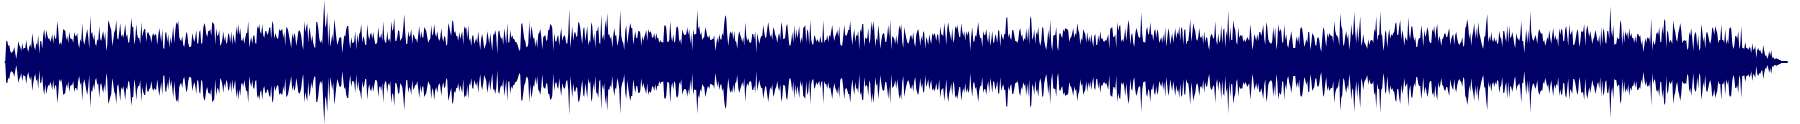 waveform of track #67607